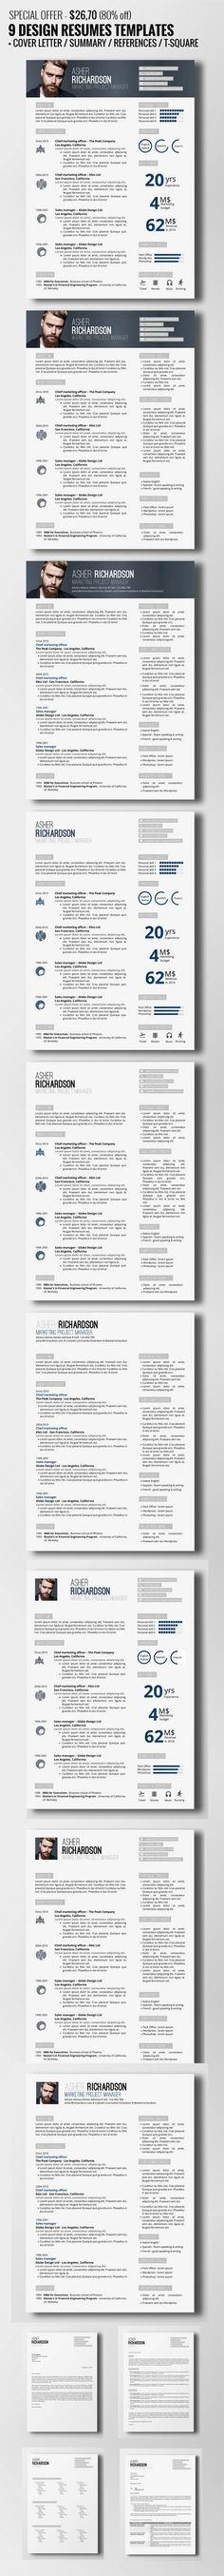 435 best Resume images on Pinterest Resume design, Design resume - business architect sample resume